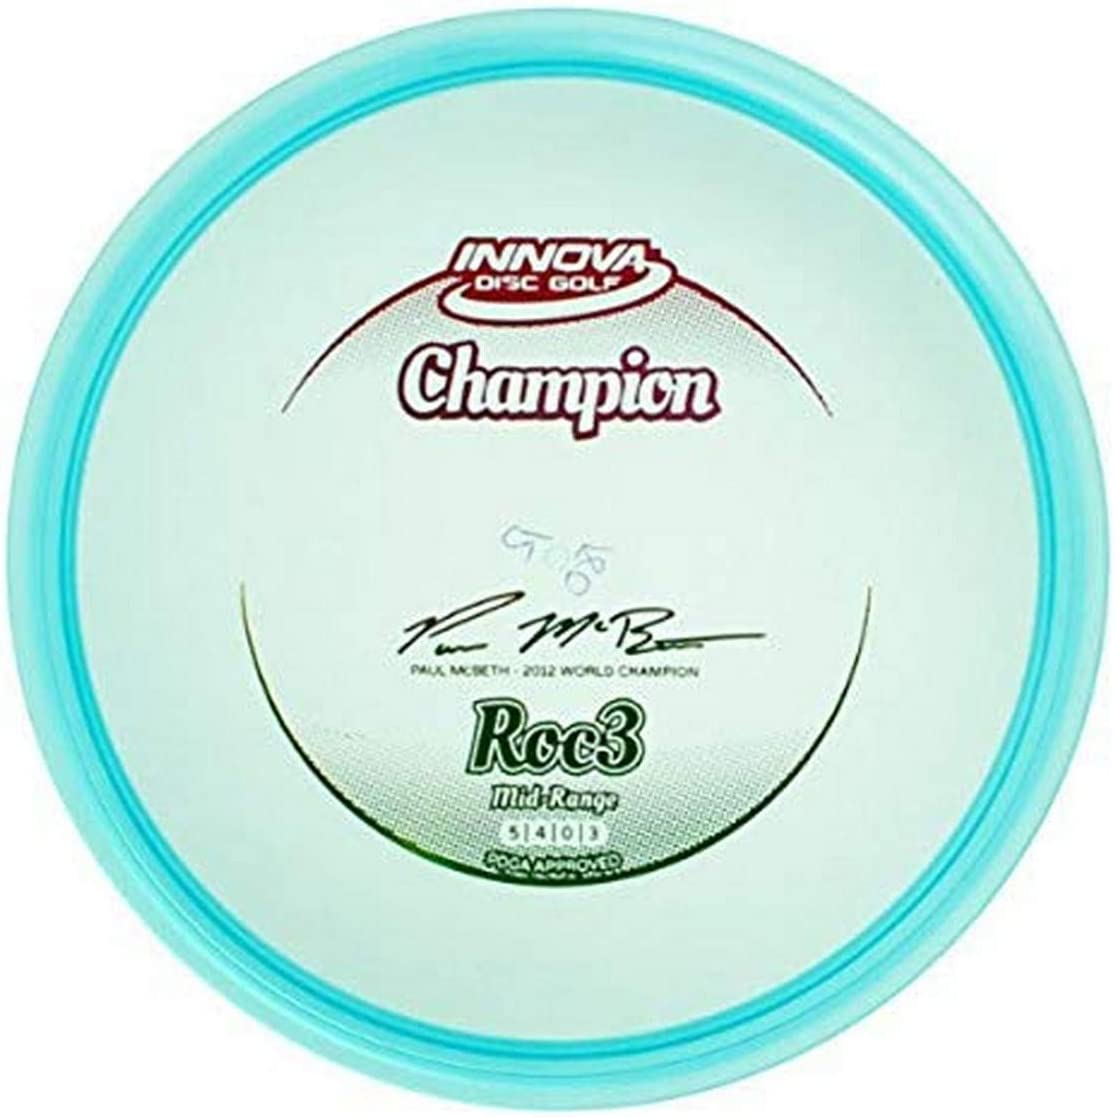 Innova Disc Golf Champion Material Roc 3 Golf Disc (Colors may vary)